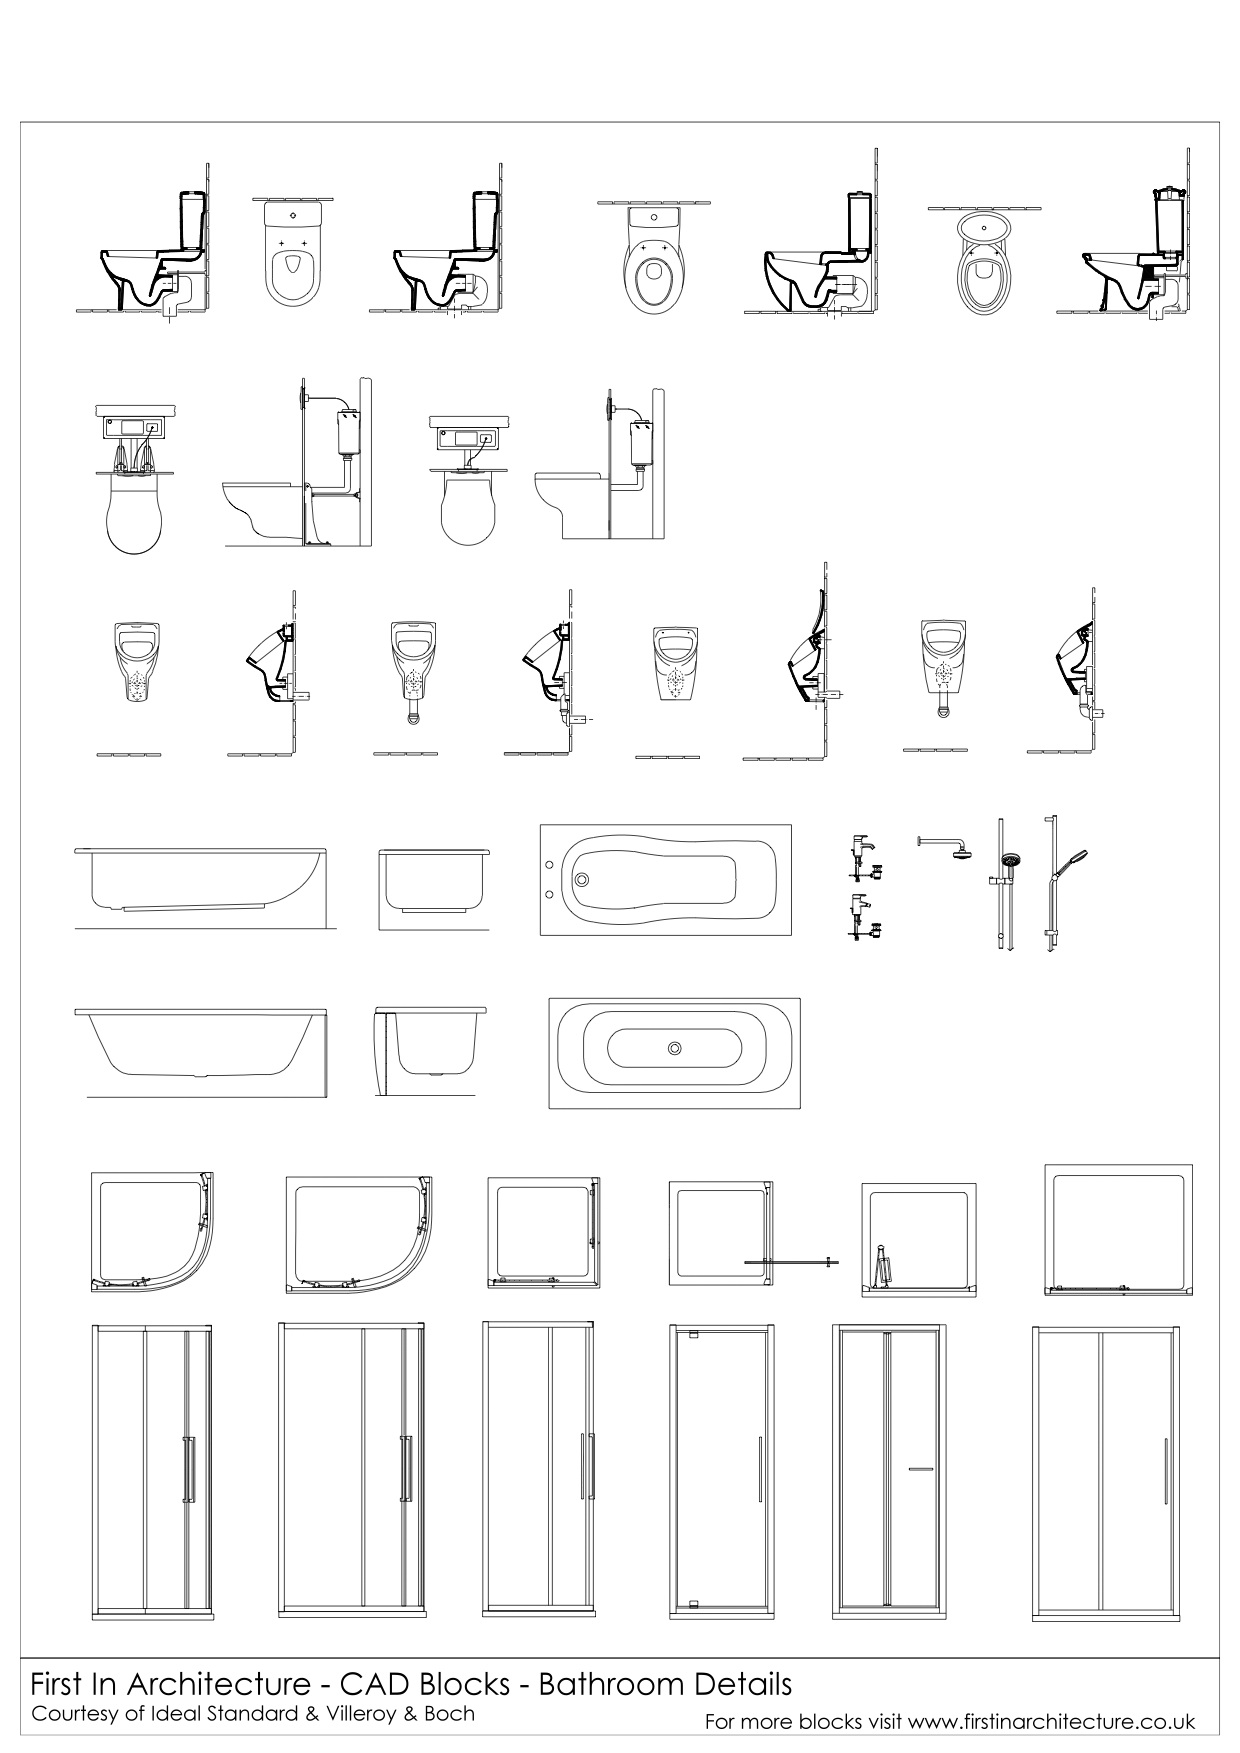 Free cad blocks bathroom details first in architecture Bathroom cad design online